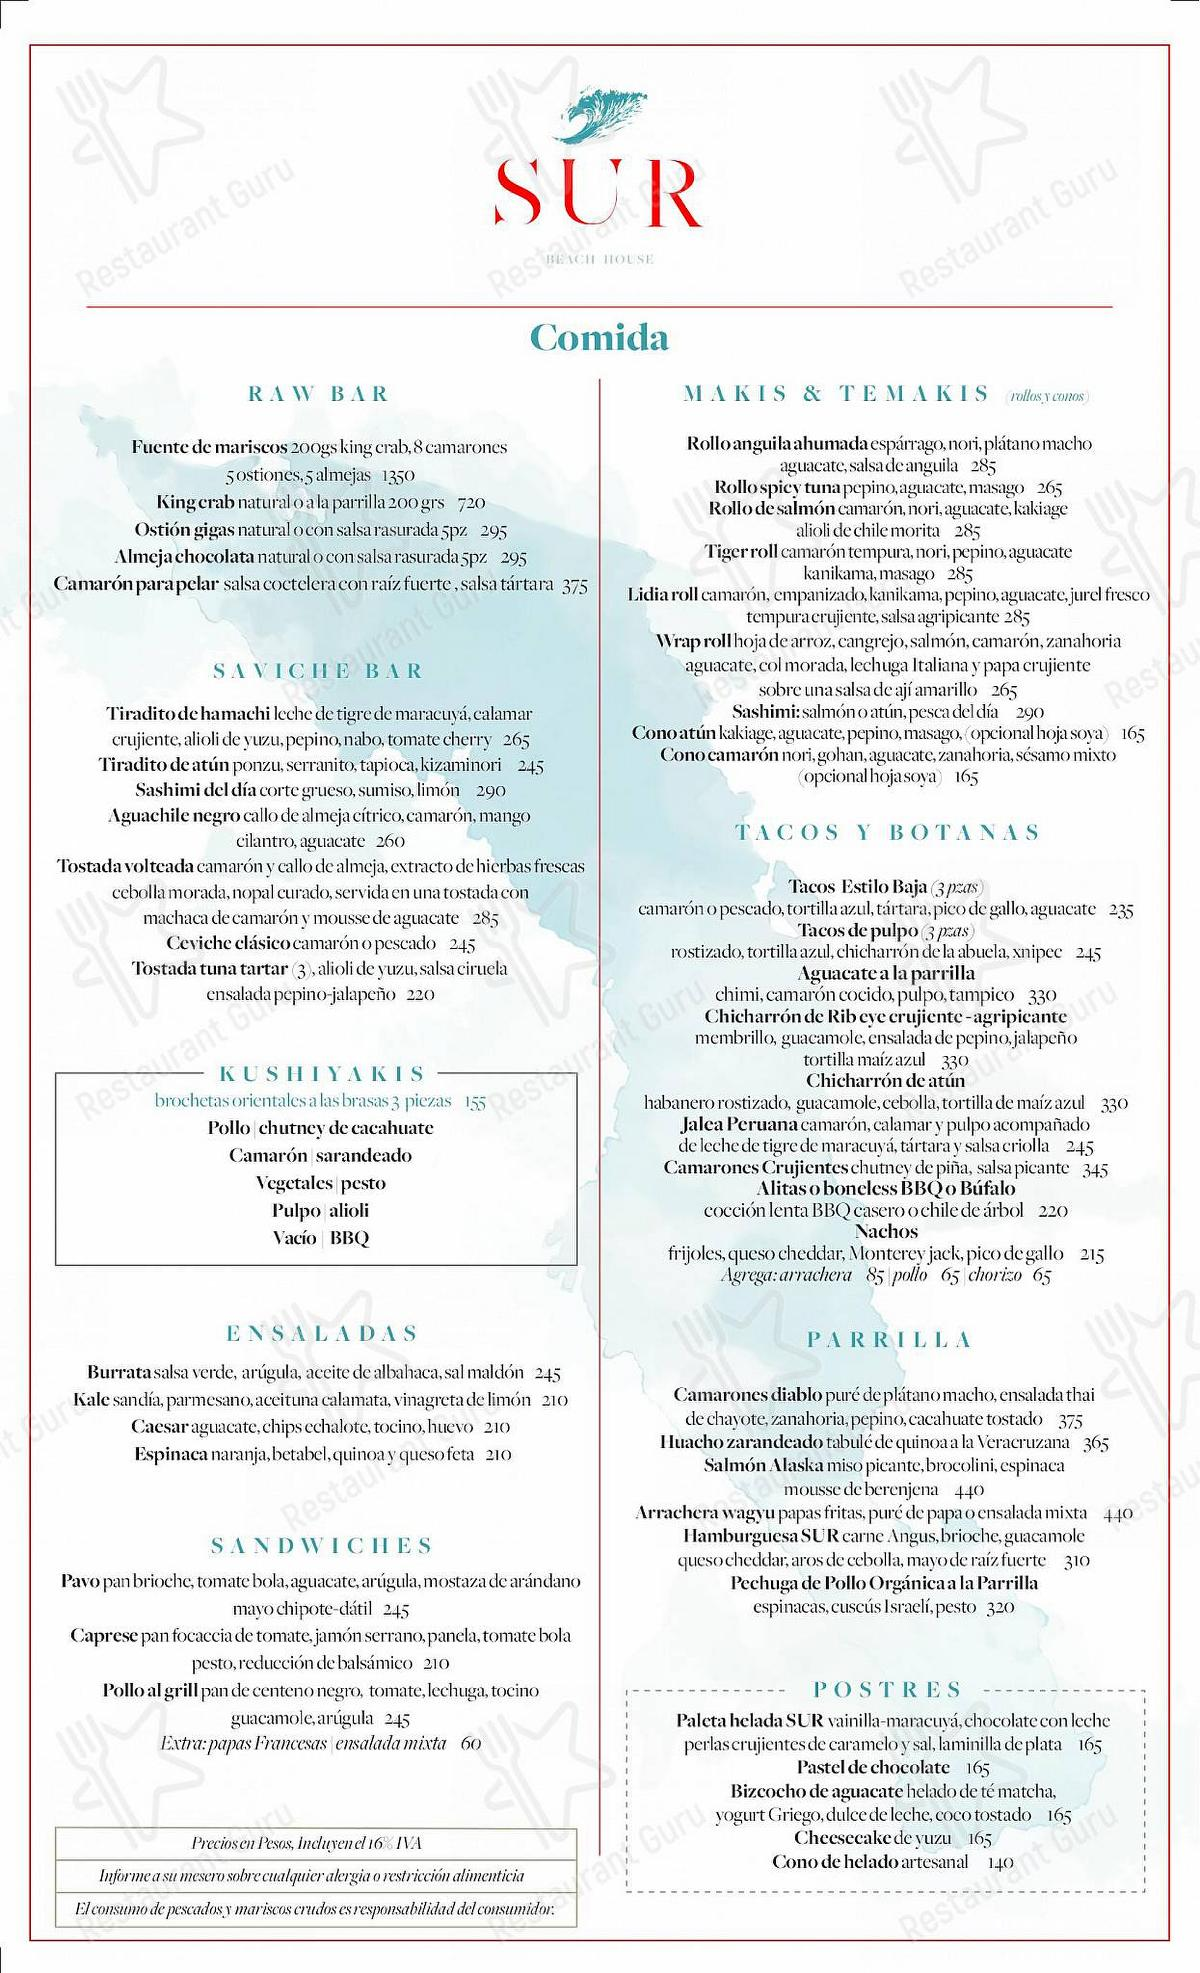 SUR Beach House menu - meals and drinks